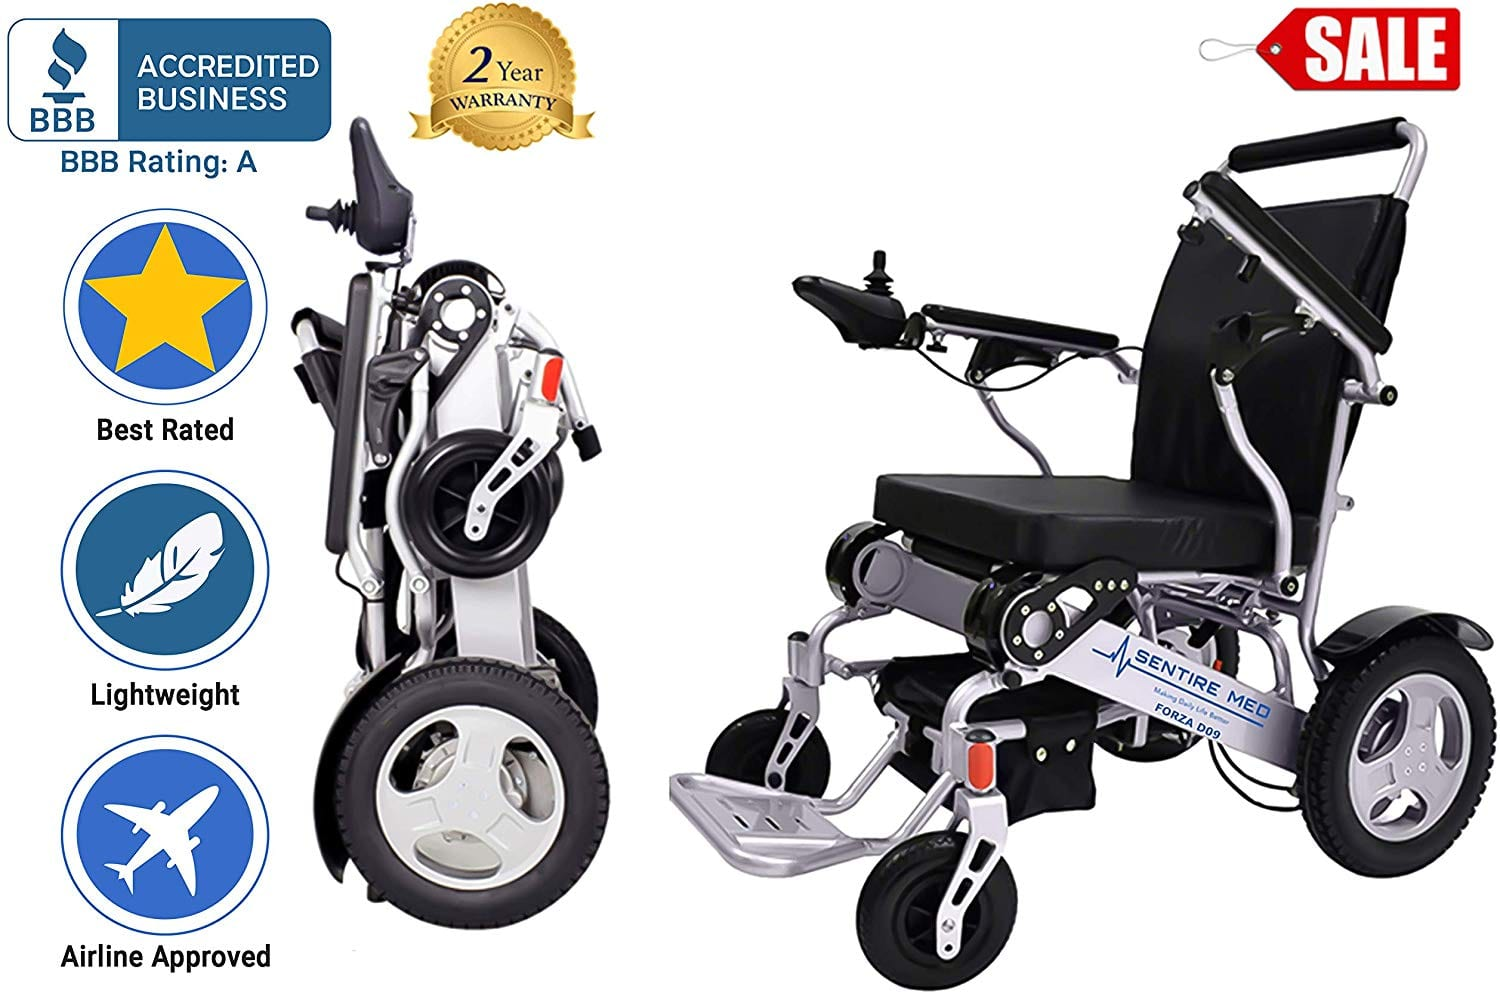 Sentire Med Foldable Wheelchair